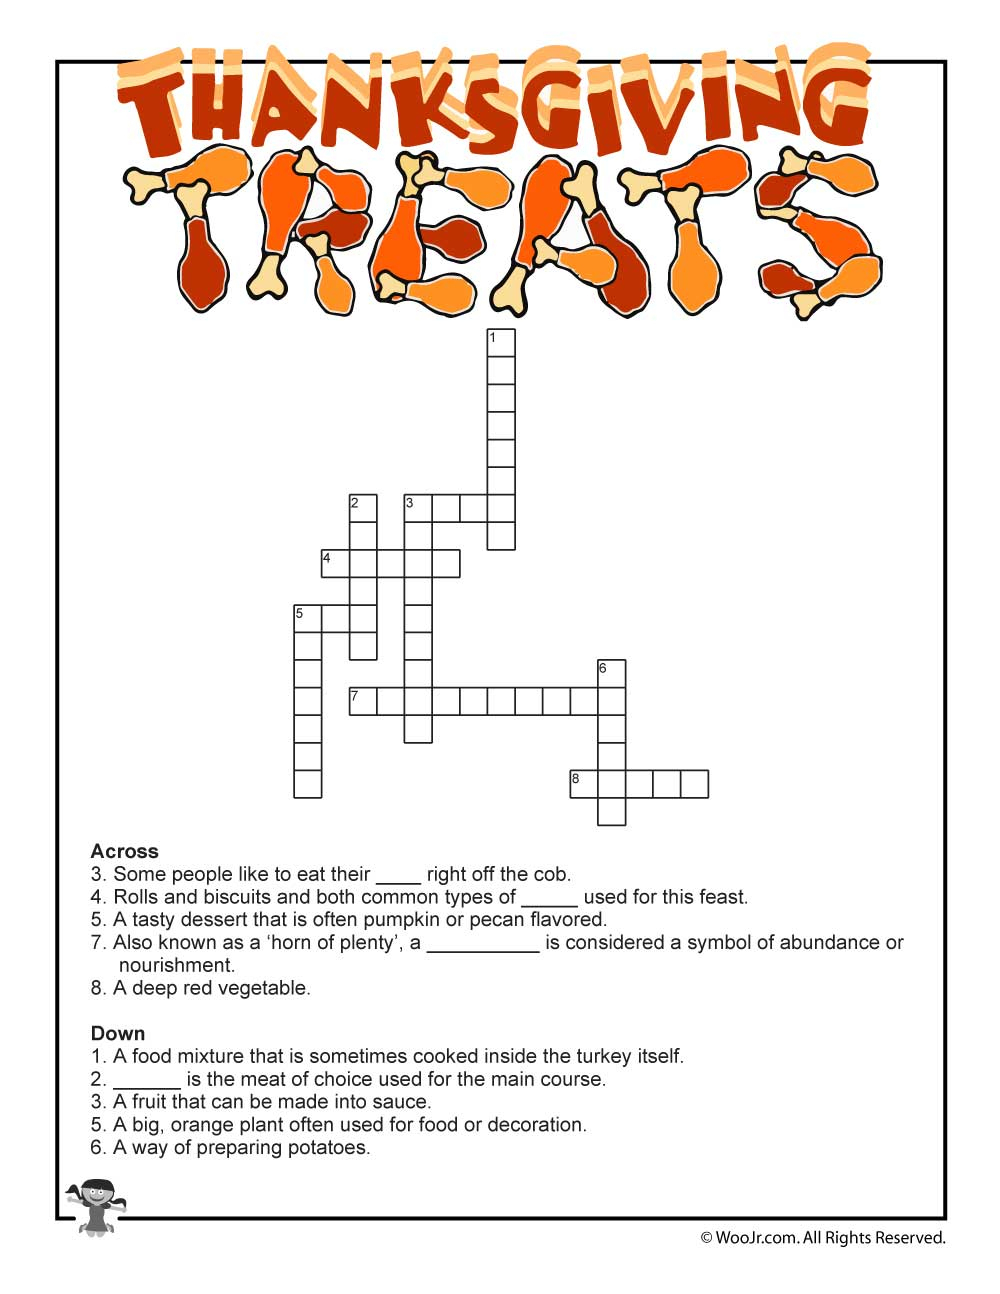 Thanksgiving Crossword Puzzle | Woo! Jr. Kids Activities - Printable Crossword Puzzles For Thanksgiving